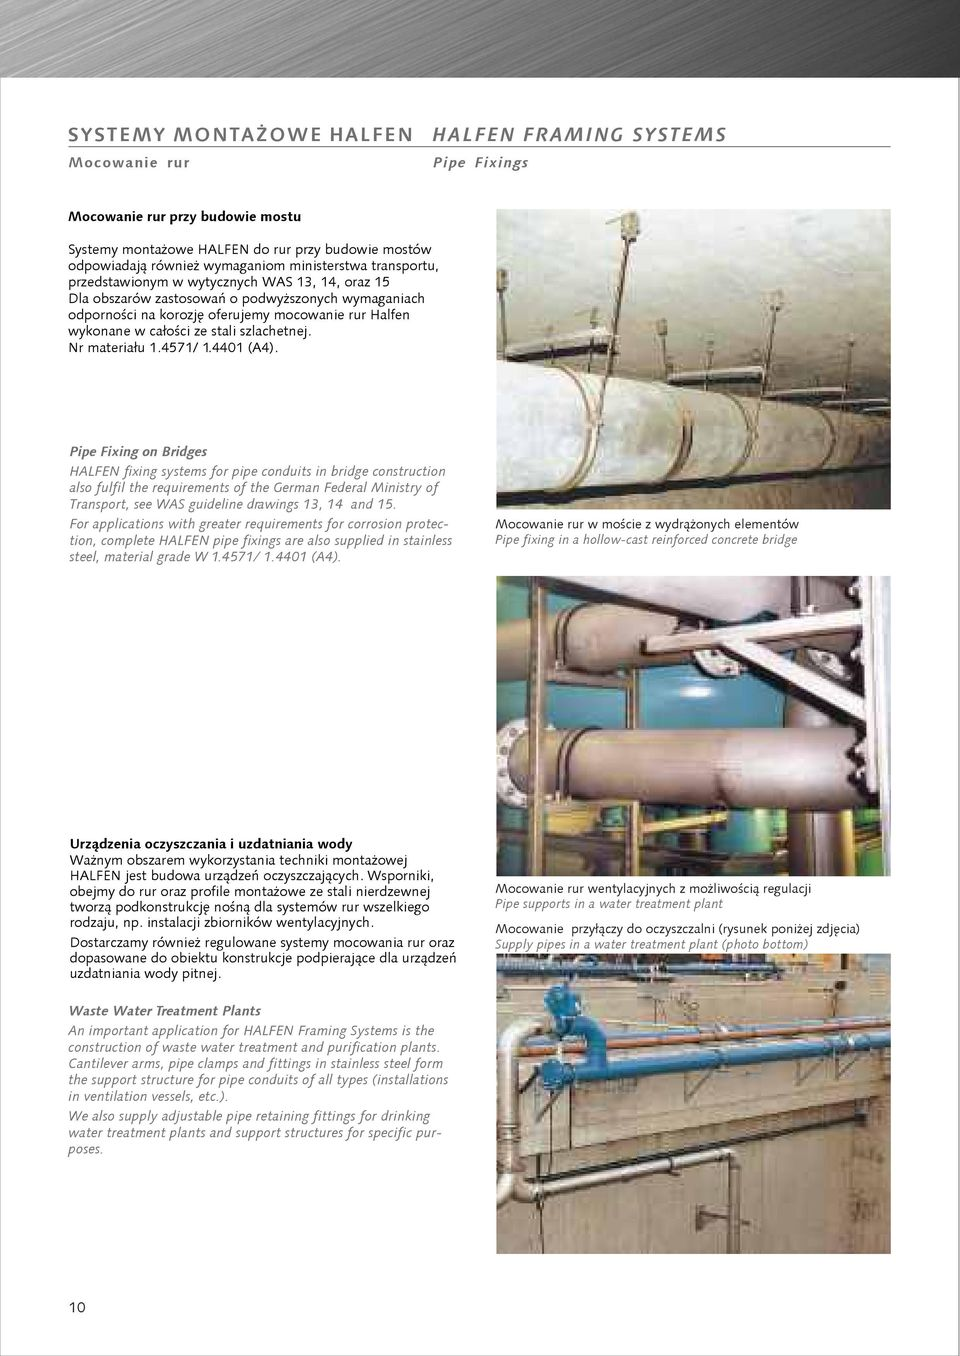 Pipe Fixing on Bridges HALFEN fixing systems for pipe conduits in bridge construction also fulfil the requirements of the German Federal Ministry of Transport, see WAS guideline drawings 13, 14 and